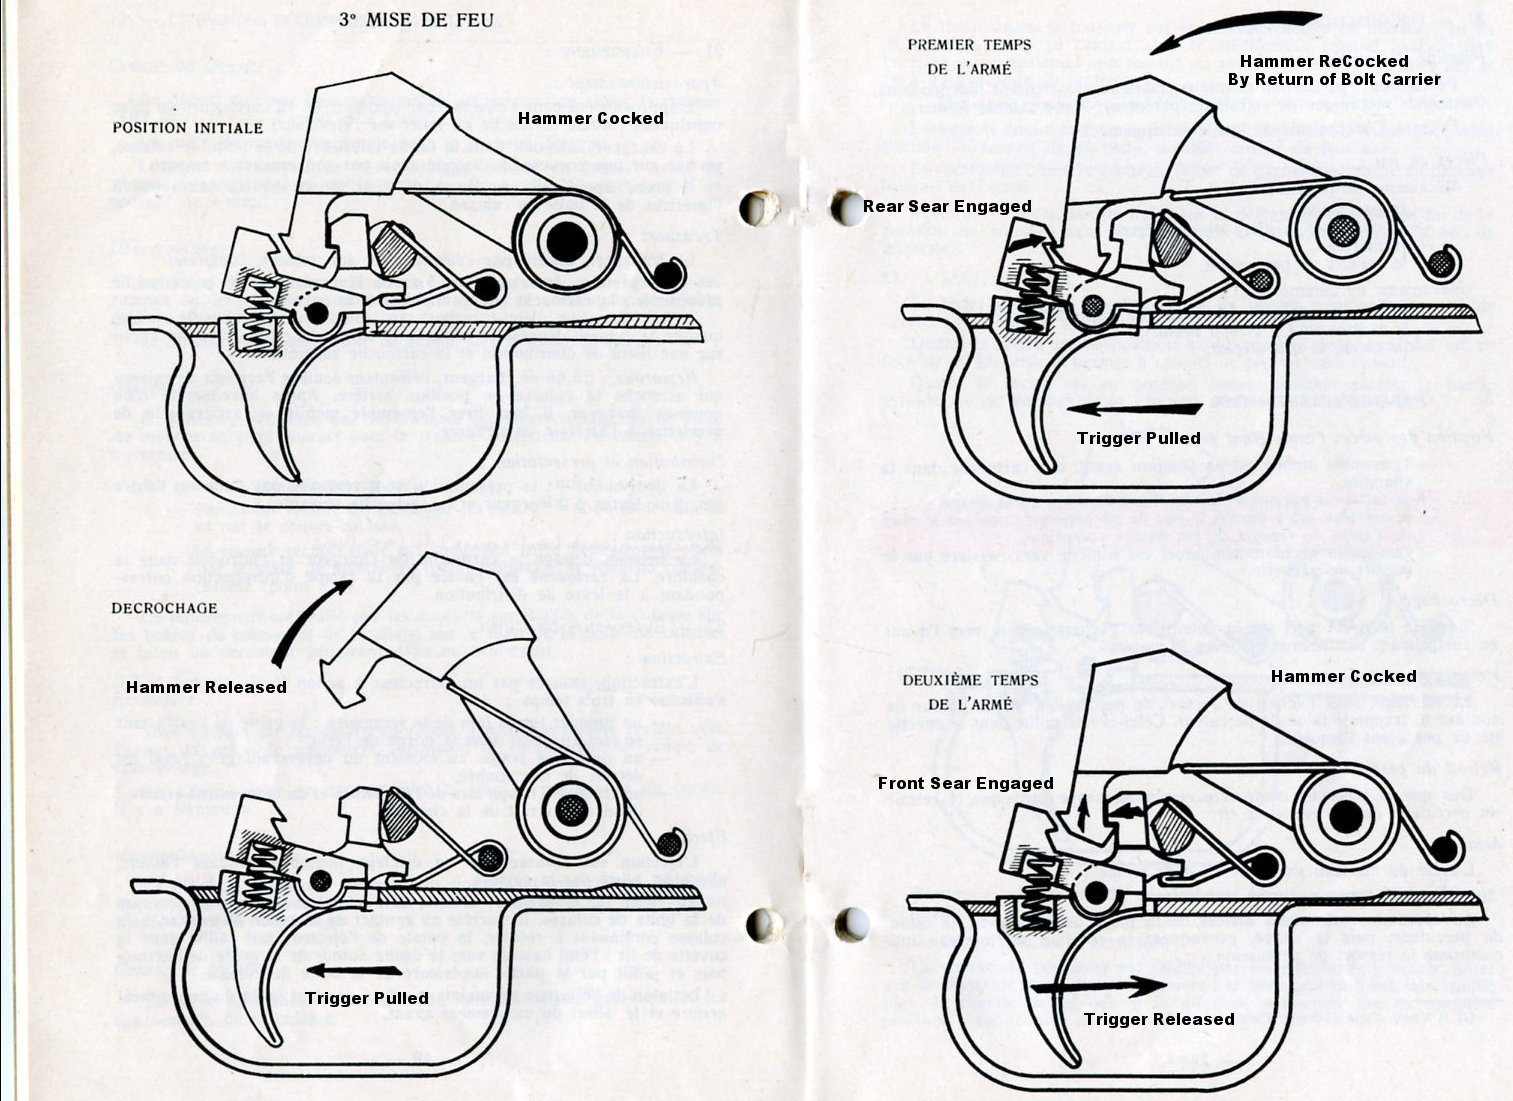 hight resolution of ar 15 trigger diagram ar free engine image for user manual download bushmaster ar 15 exploded diagram mosin m44 exploded diagram